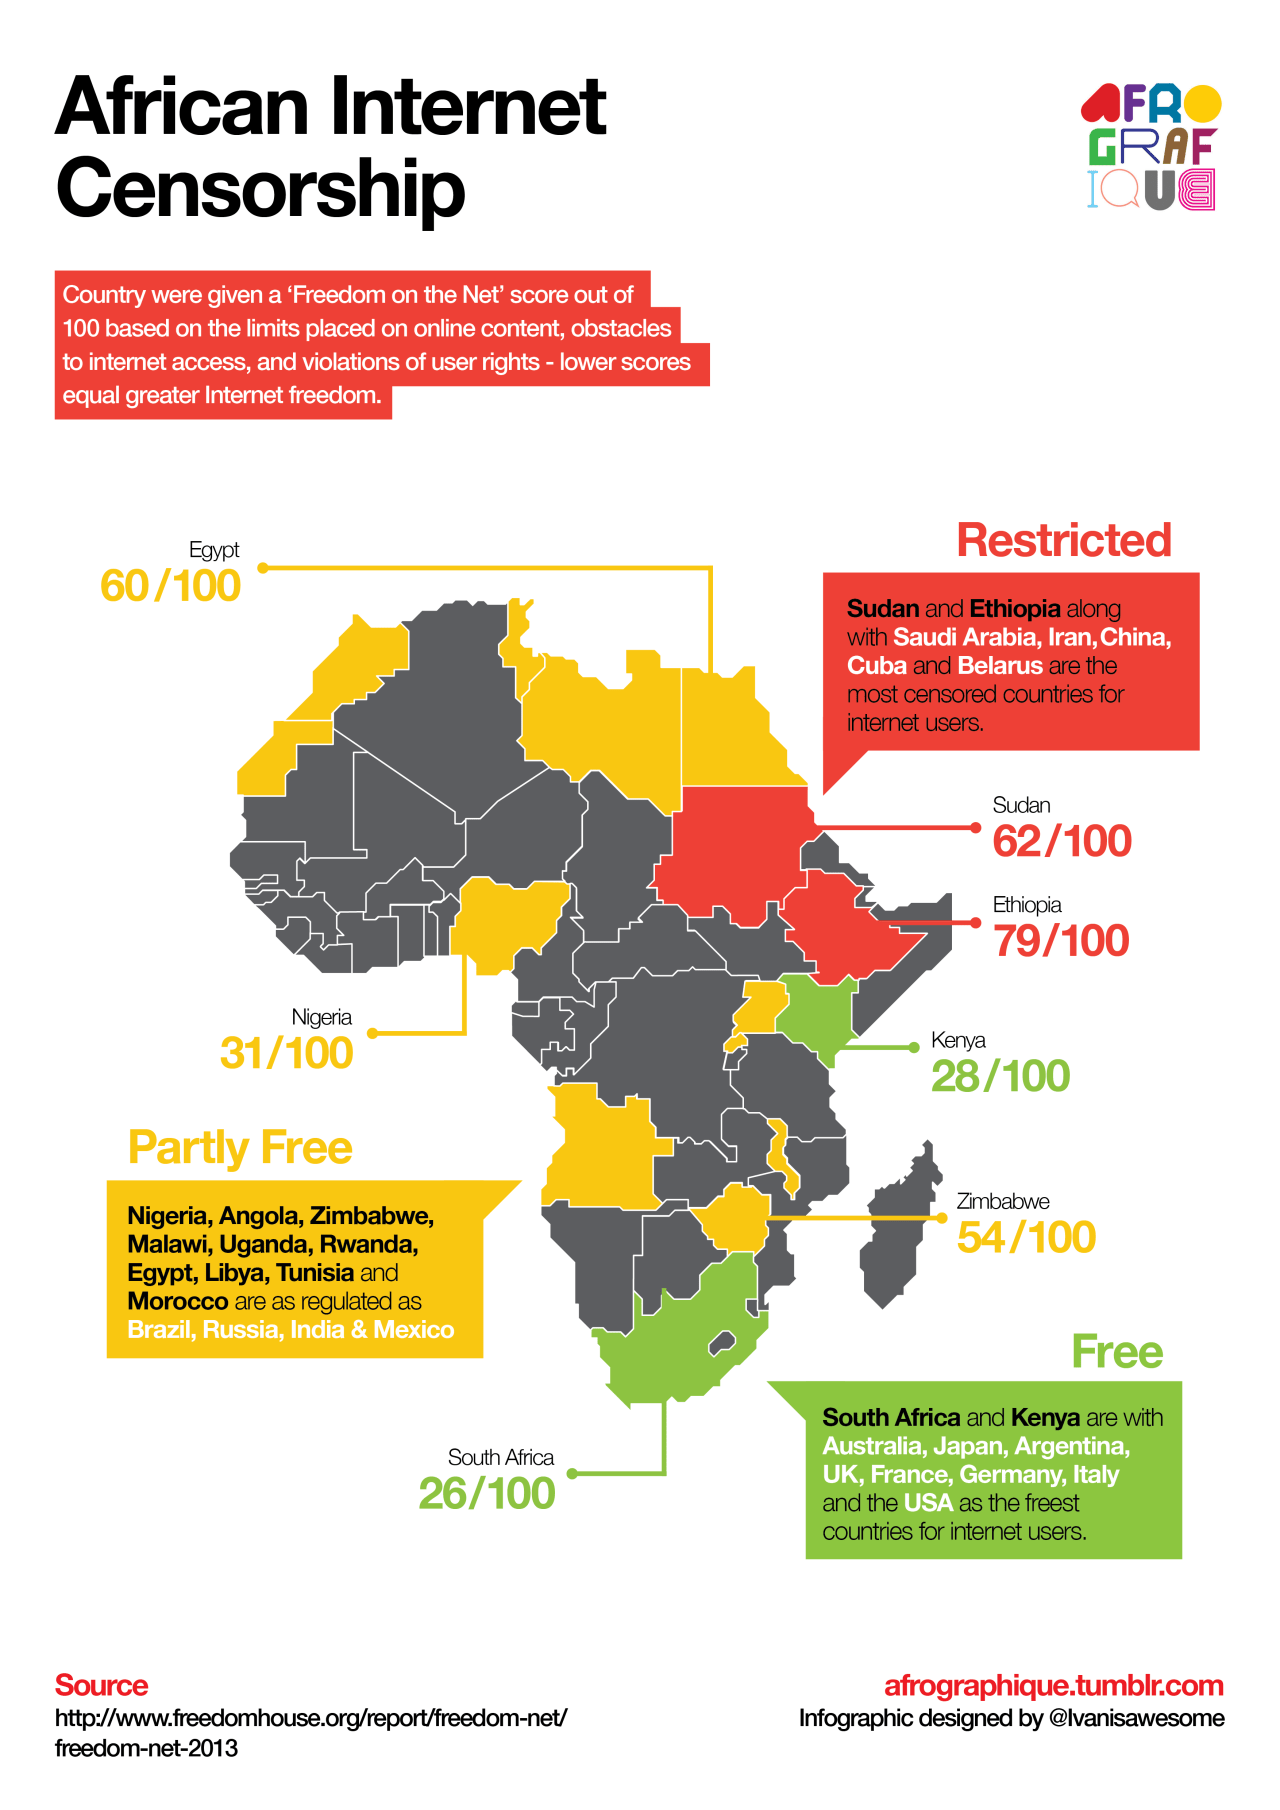 African Internet censorship: an infographic detailing the freest and most restricted African countries for Internet users.